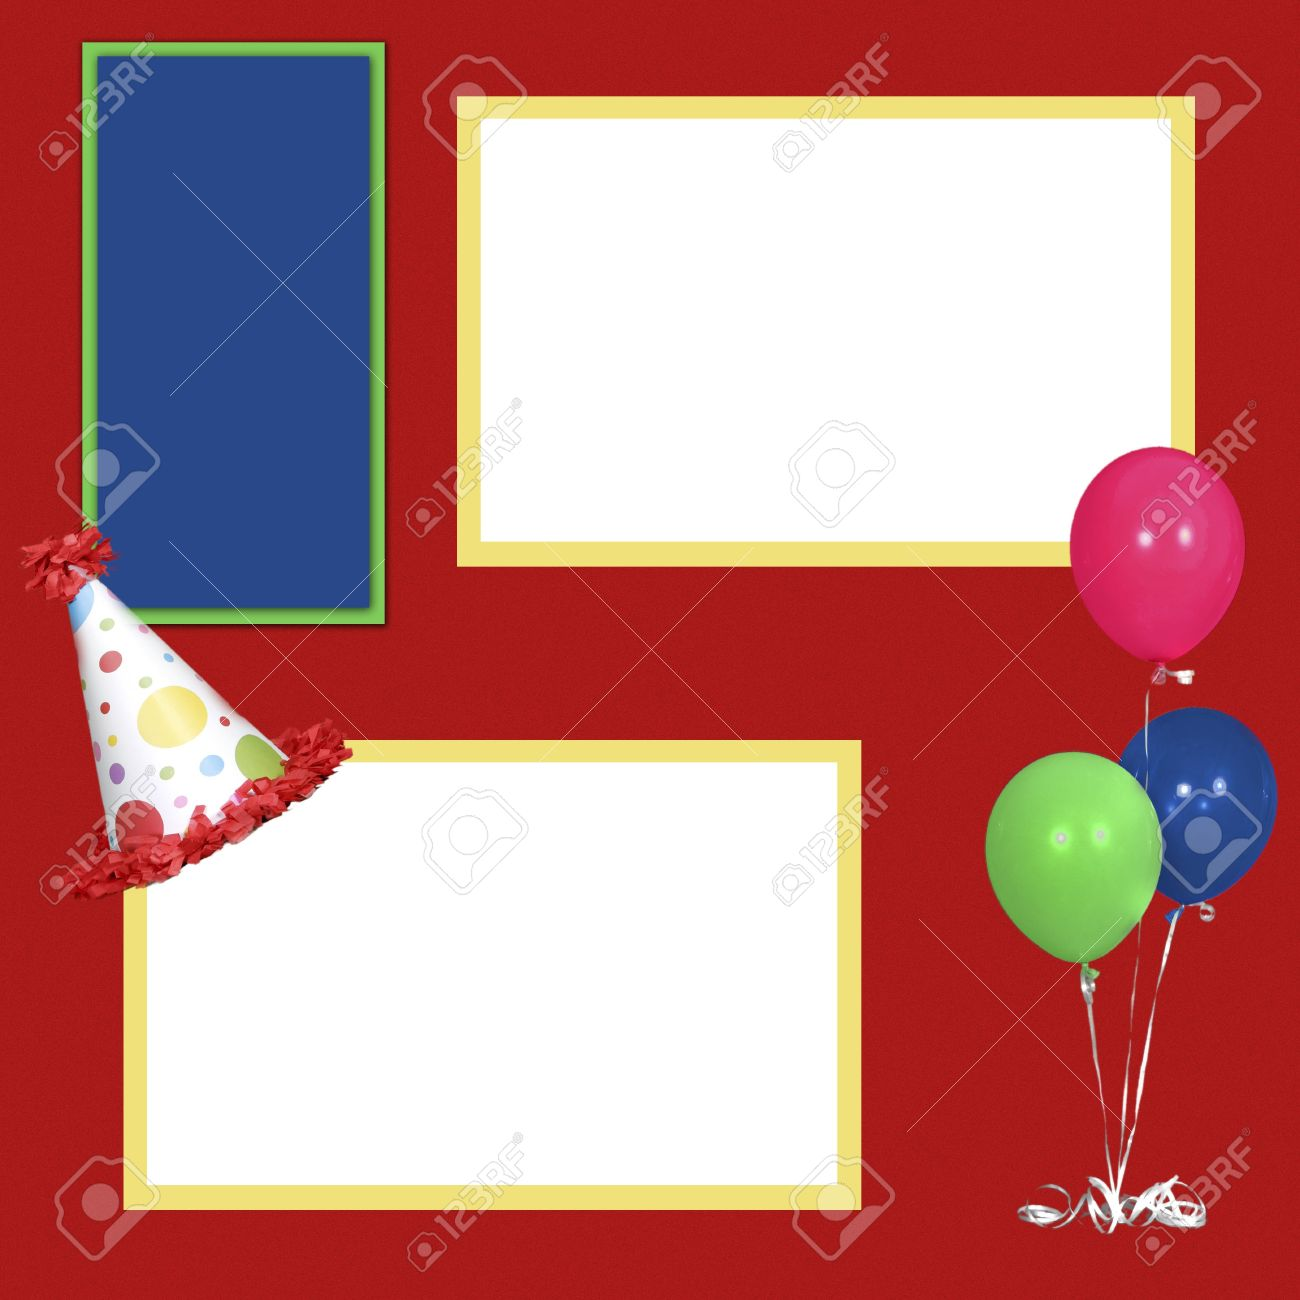 birthday theme square frame scrapbook template insert your photos